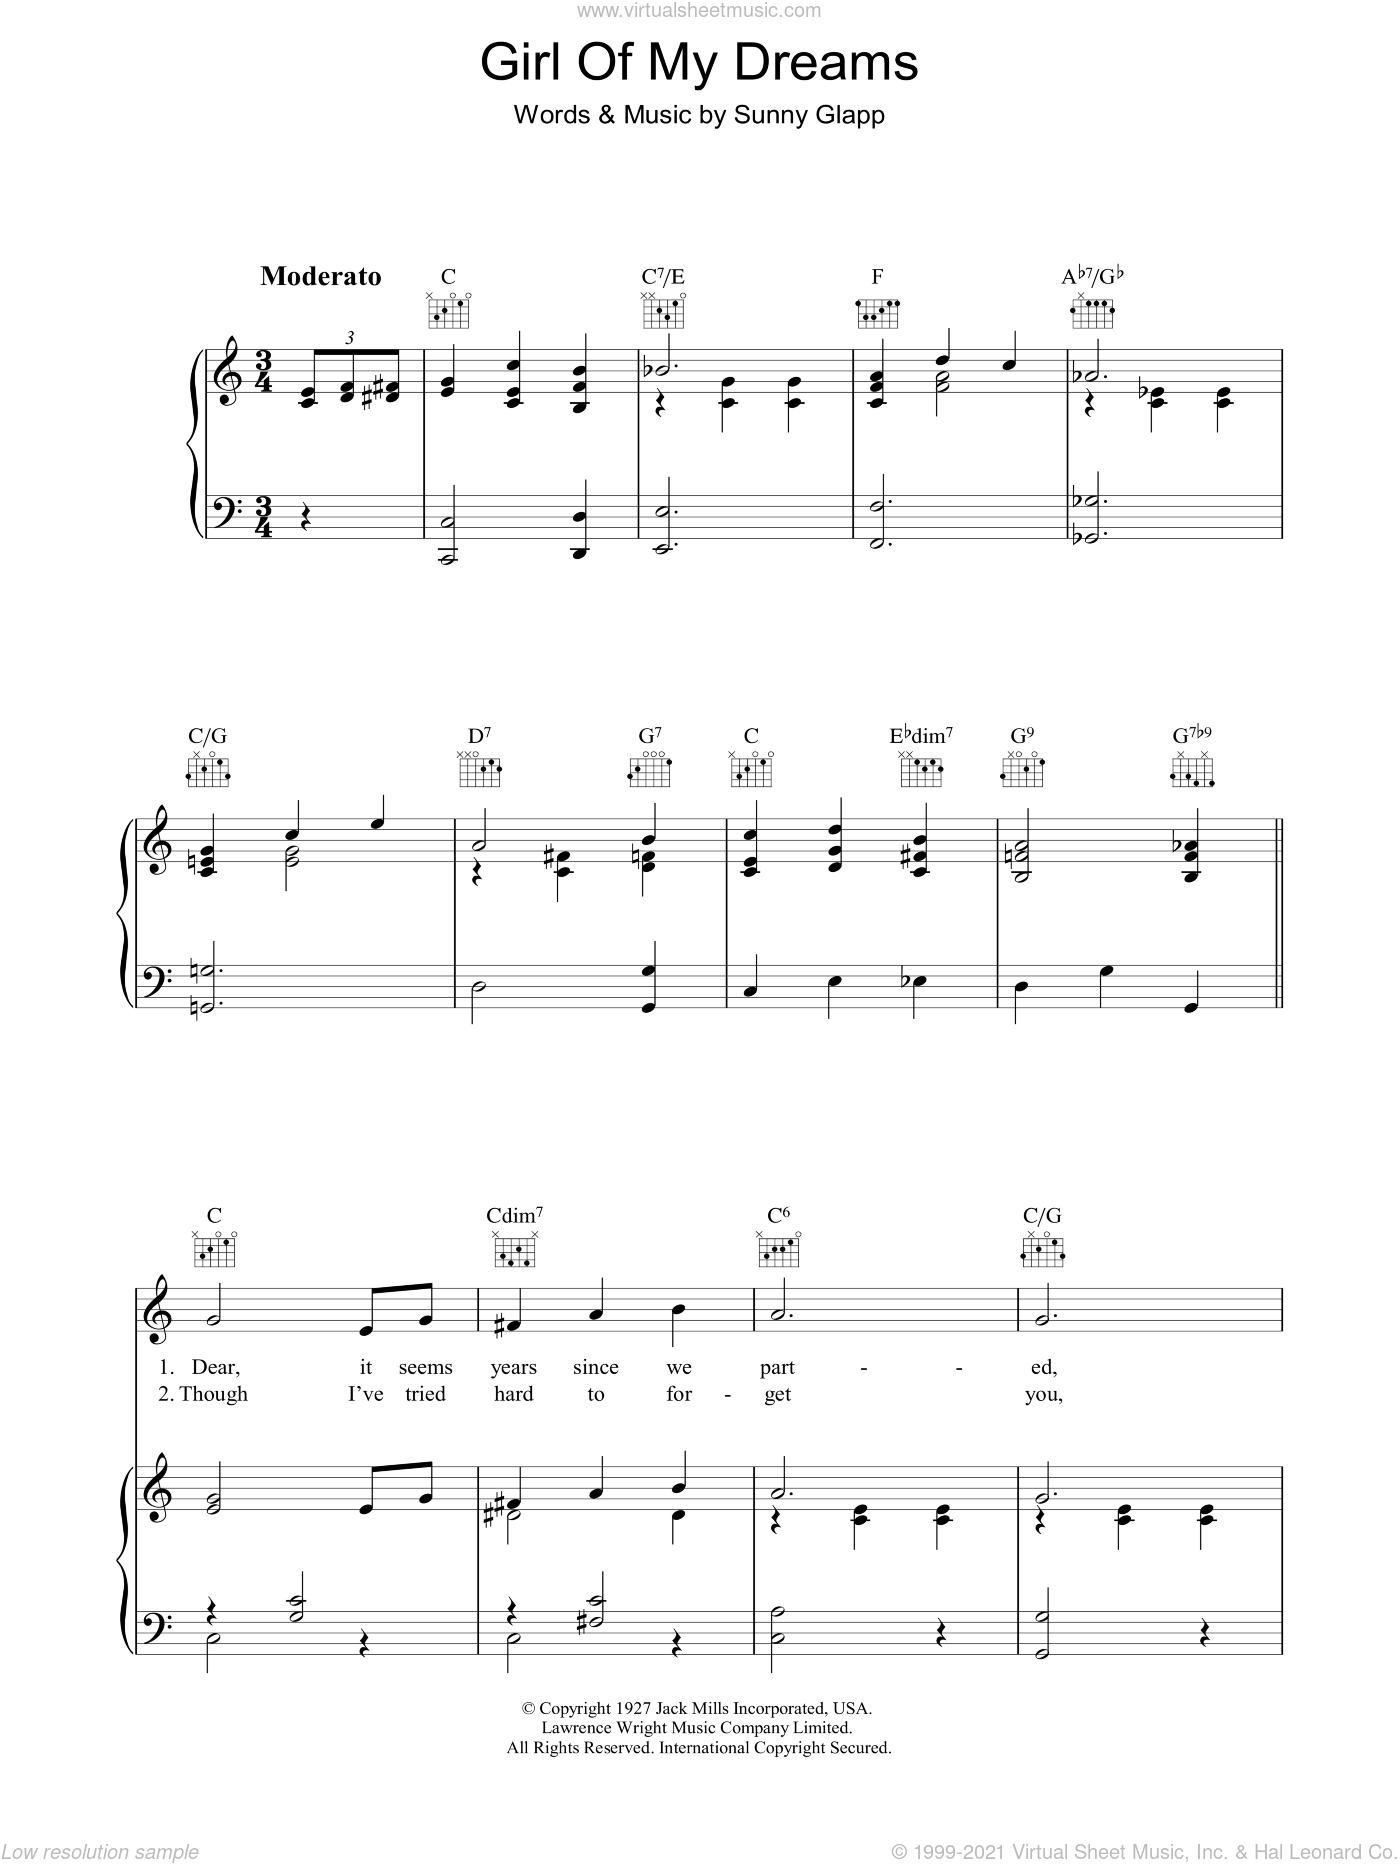 Girl Of My Dreams sheet music for voice, piano or guitar by Sunny Clapp. Score Image Preview.